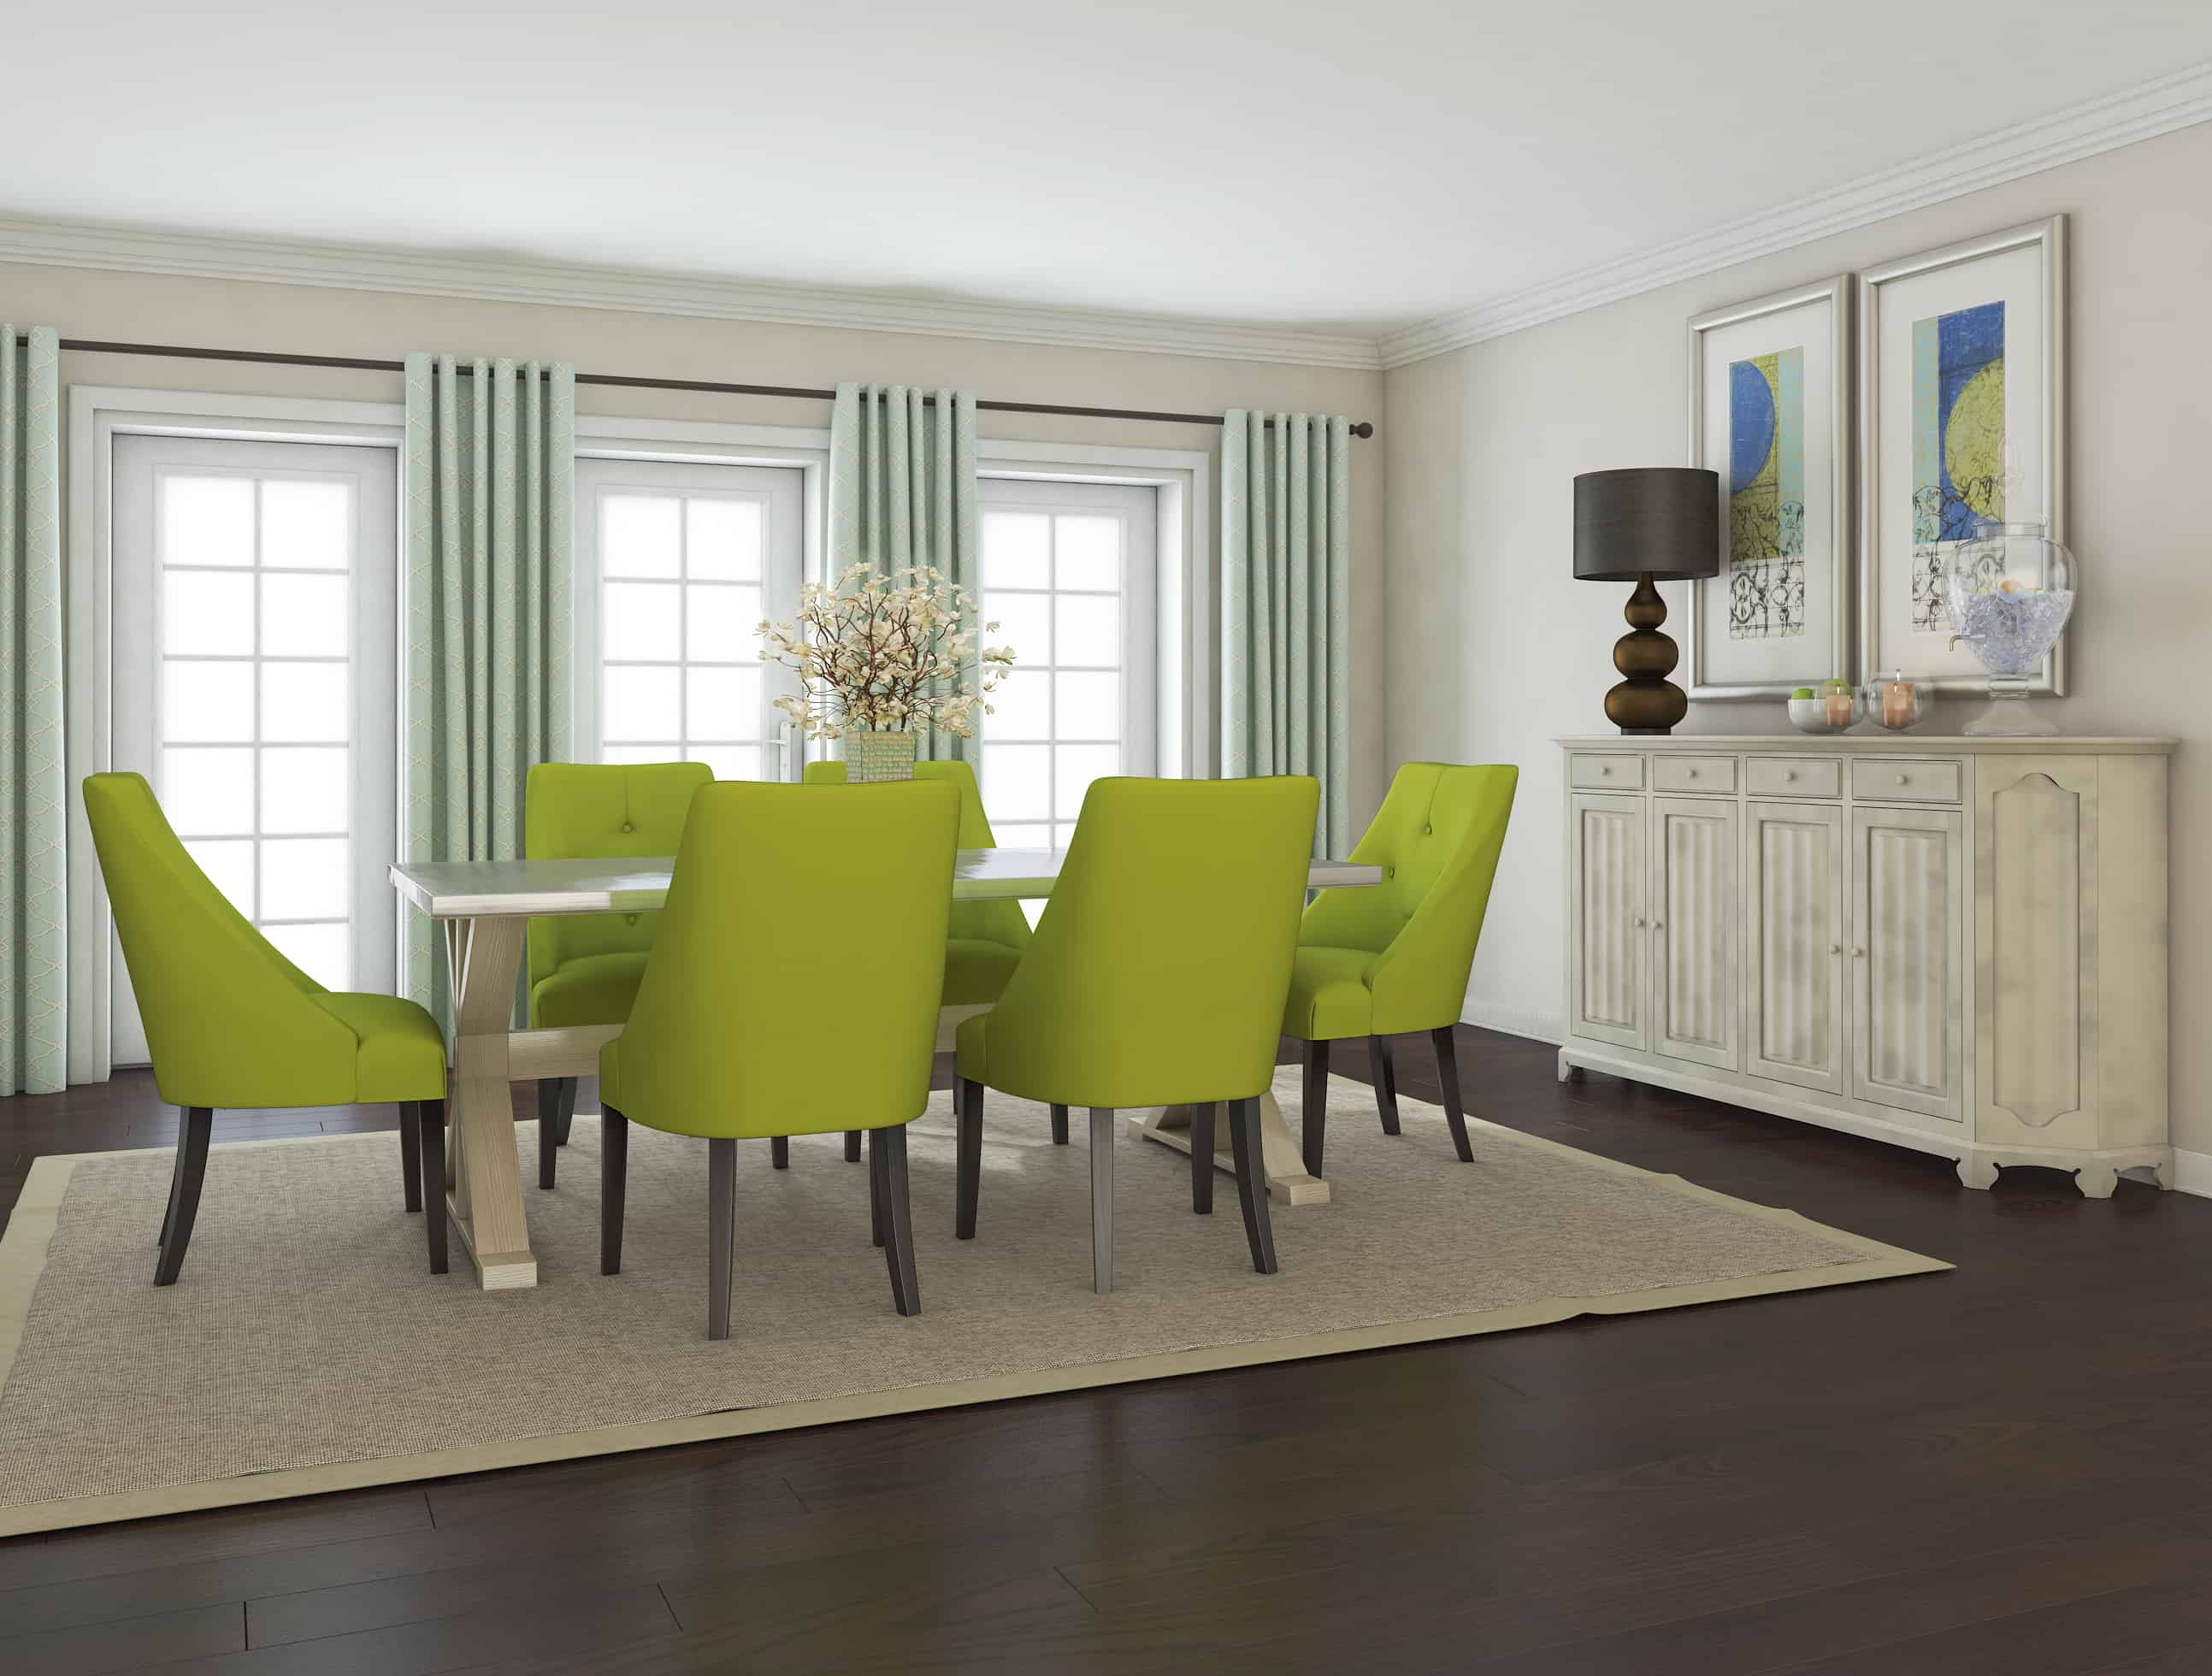 Green Is In. Modern Dining Room Tables That Are on Trend